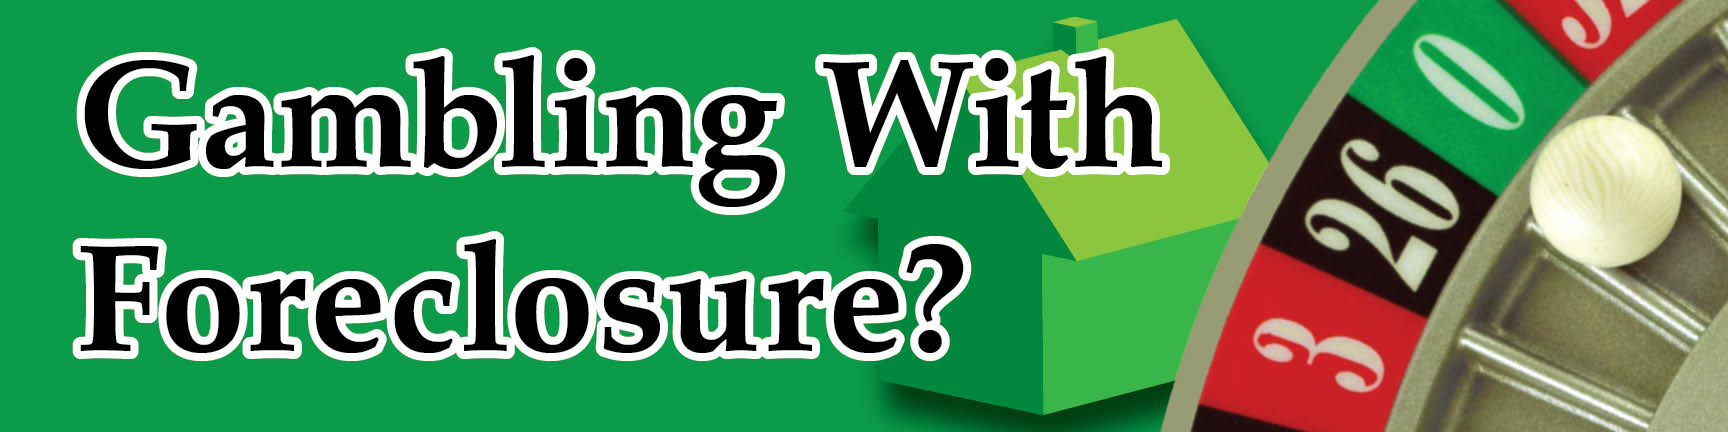 Gambling With Foreclosure?